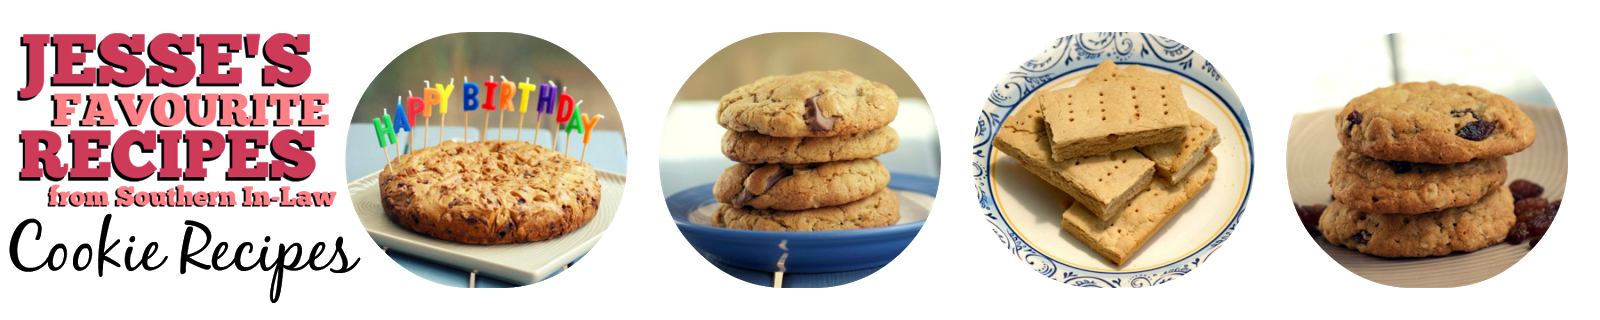 Healthy Cookie Recipes - Gluten Free, Low Fat, Sugar Free